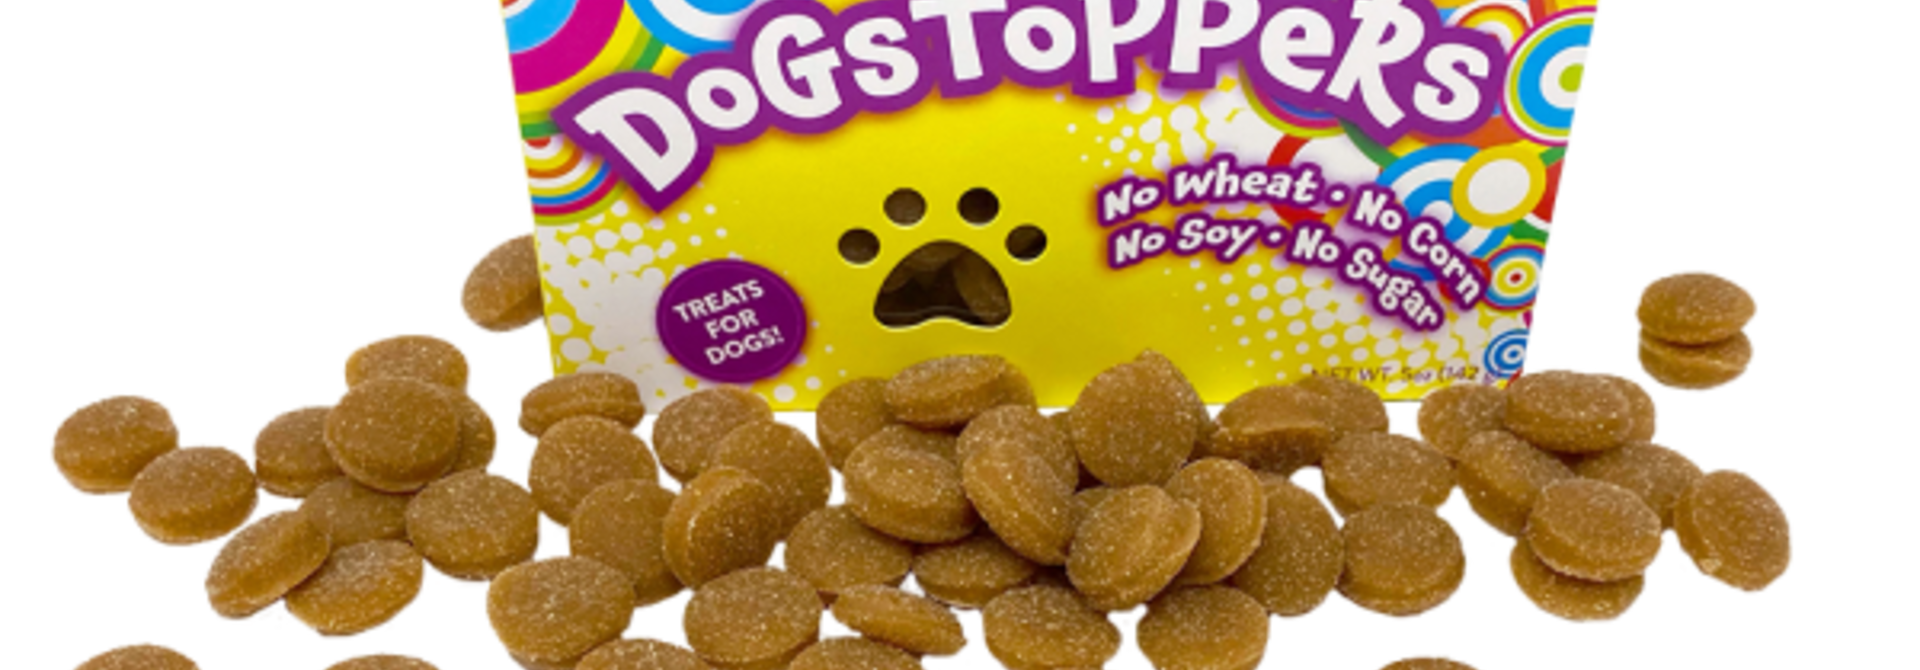 Dogstoppers Treats Cheese Flavour 5oz